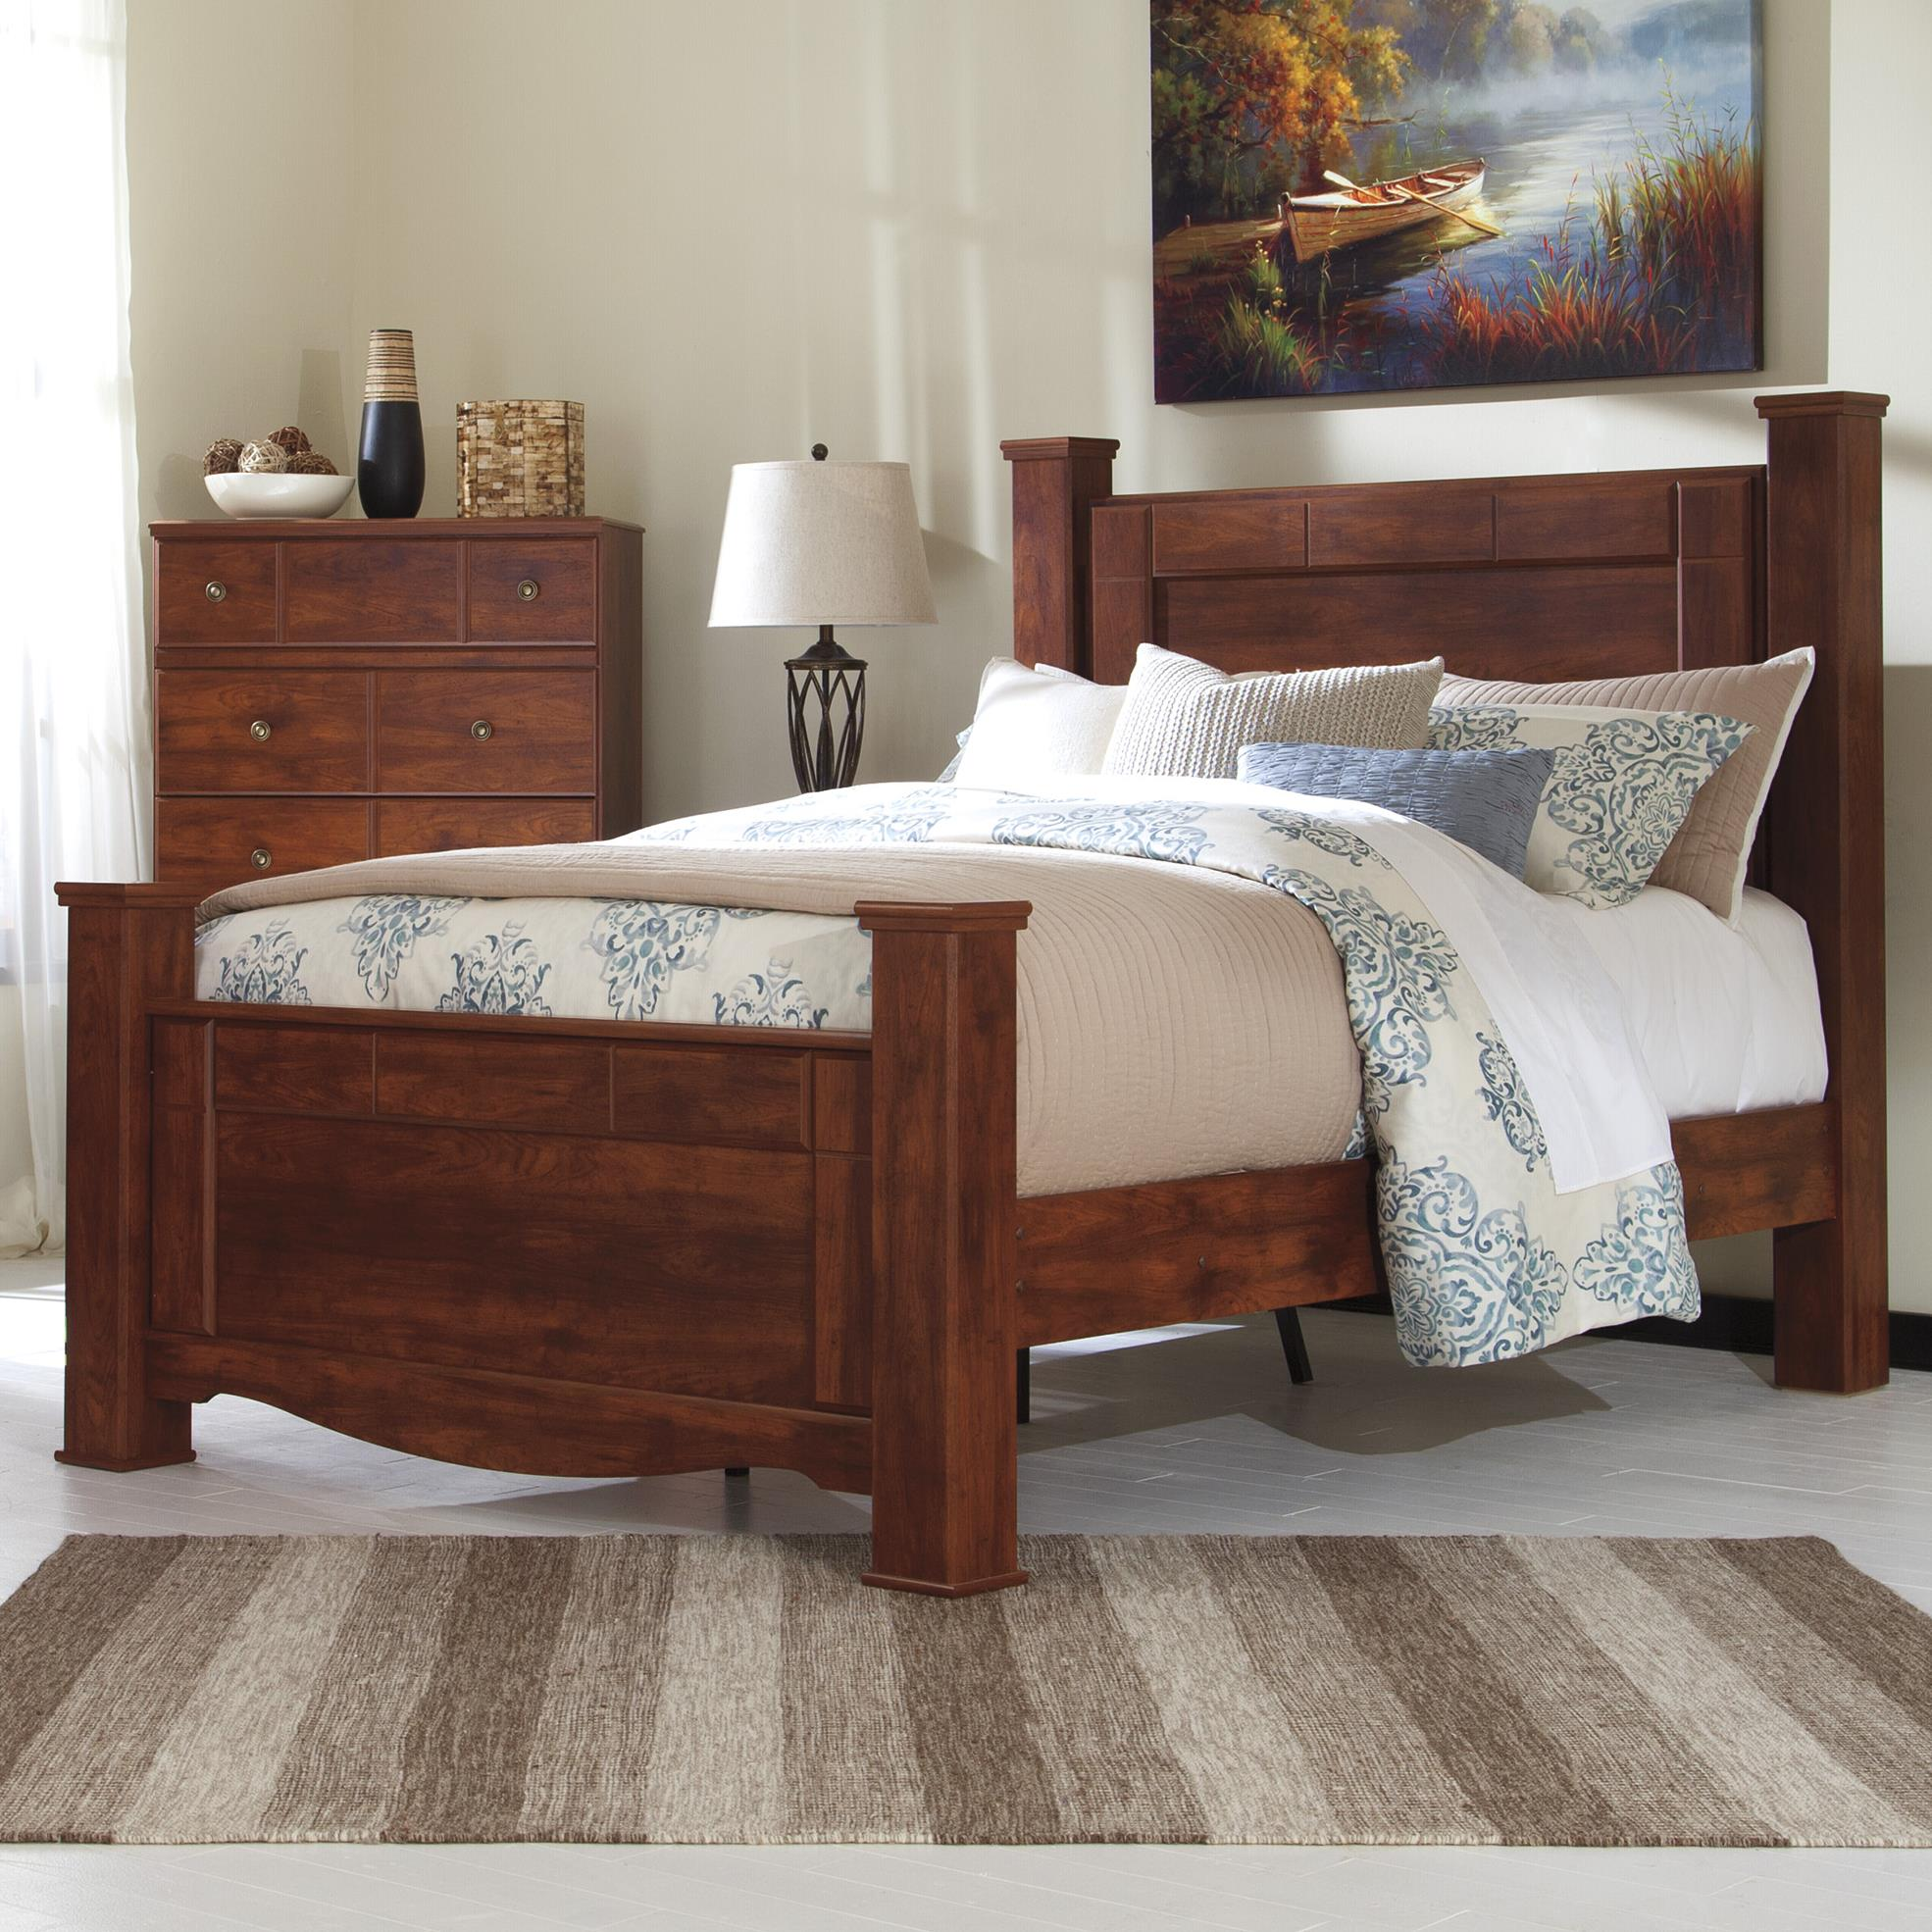 Signature Design by Ashley Brittberg Queen Poster Bed - Item Number: B265-67+64+61+98